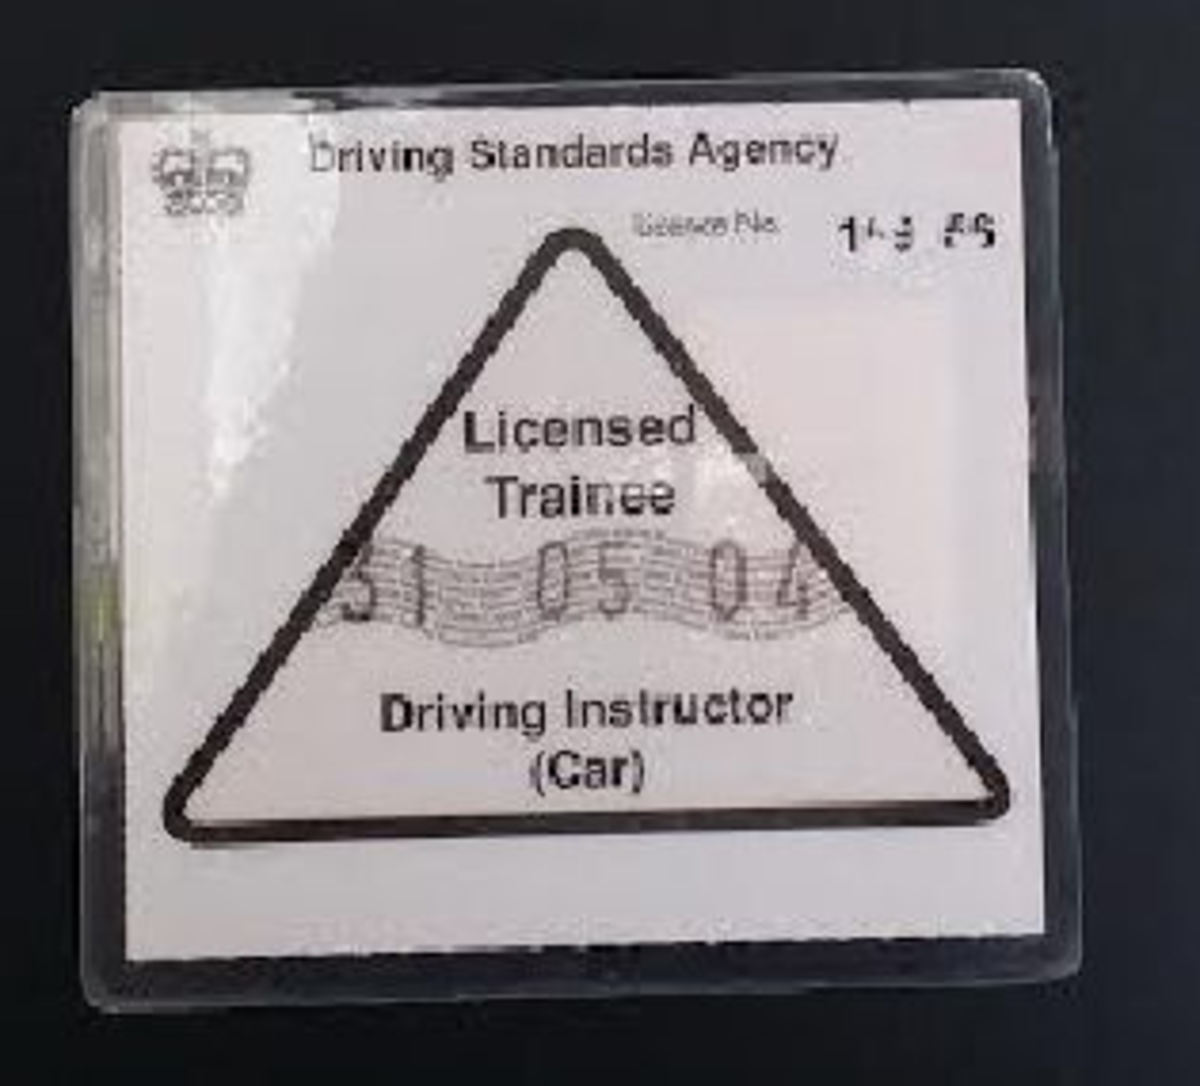 Trainee Potential Driving Instructors (PDIs) display a pink triangular badge